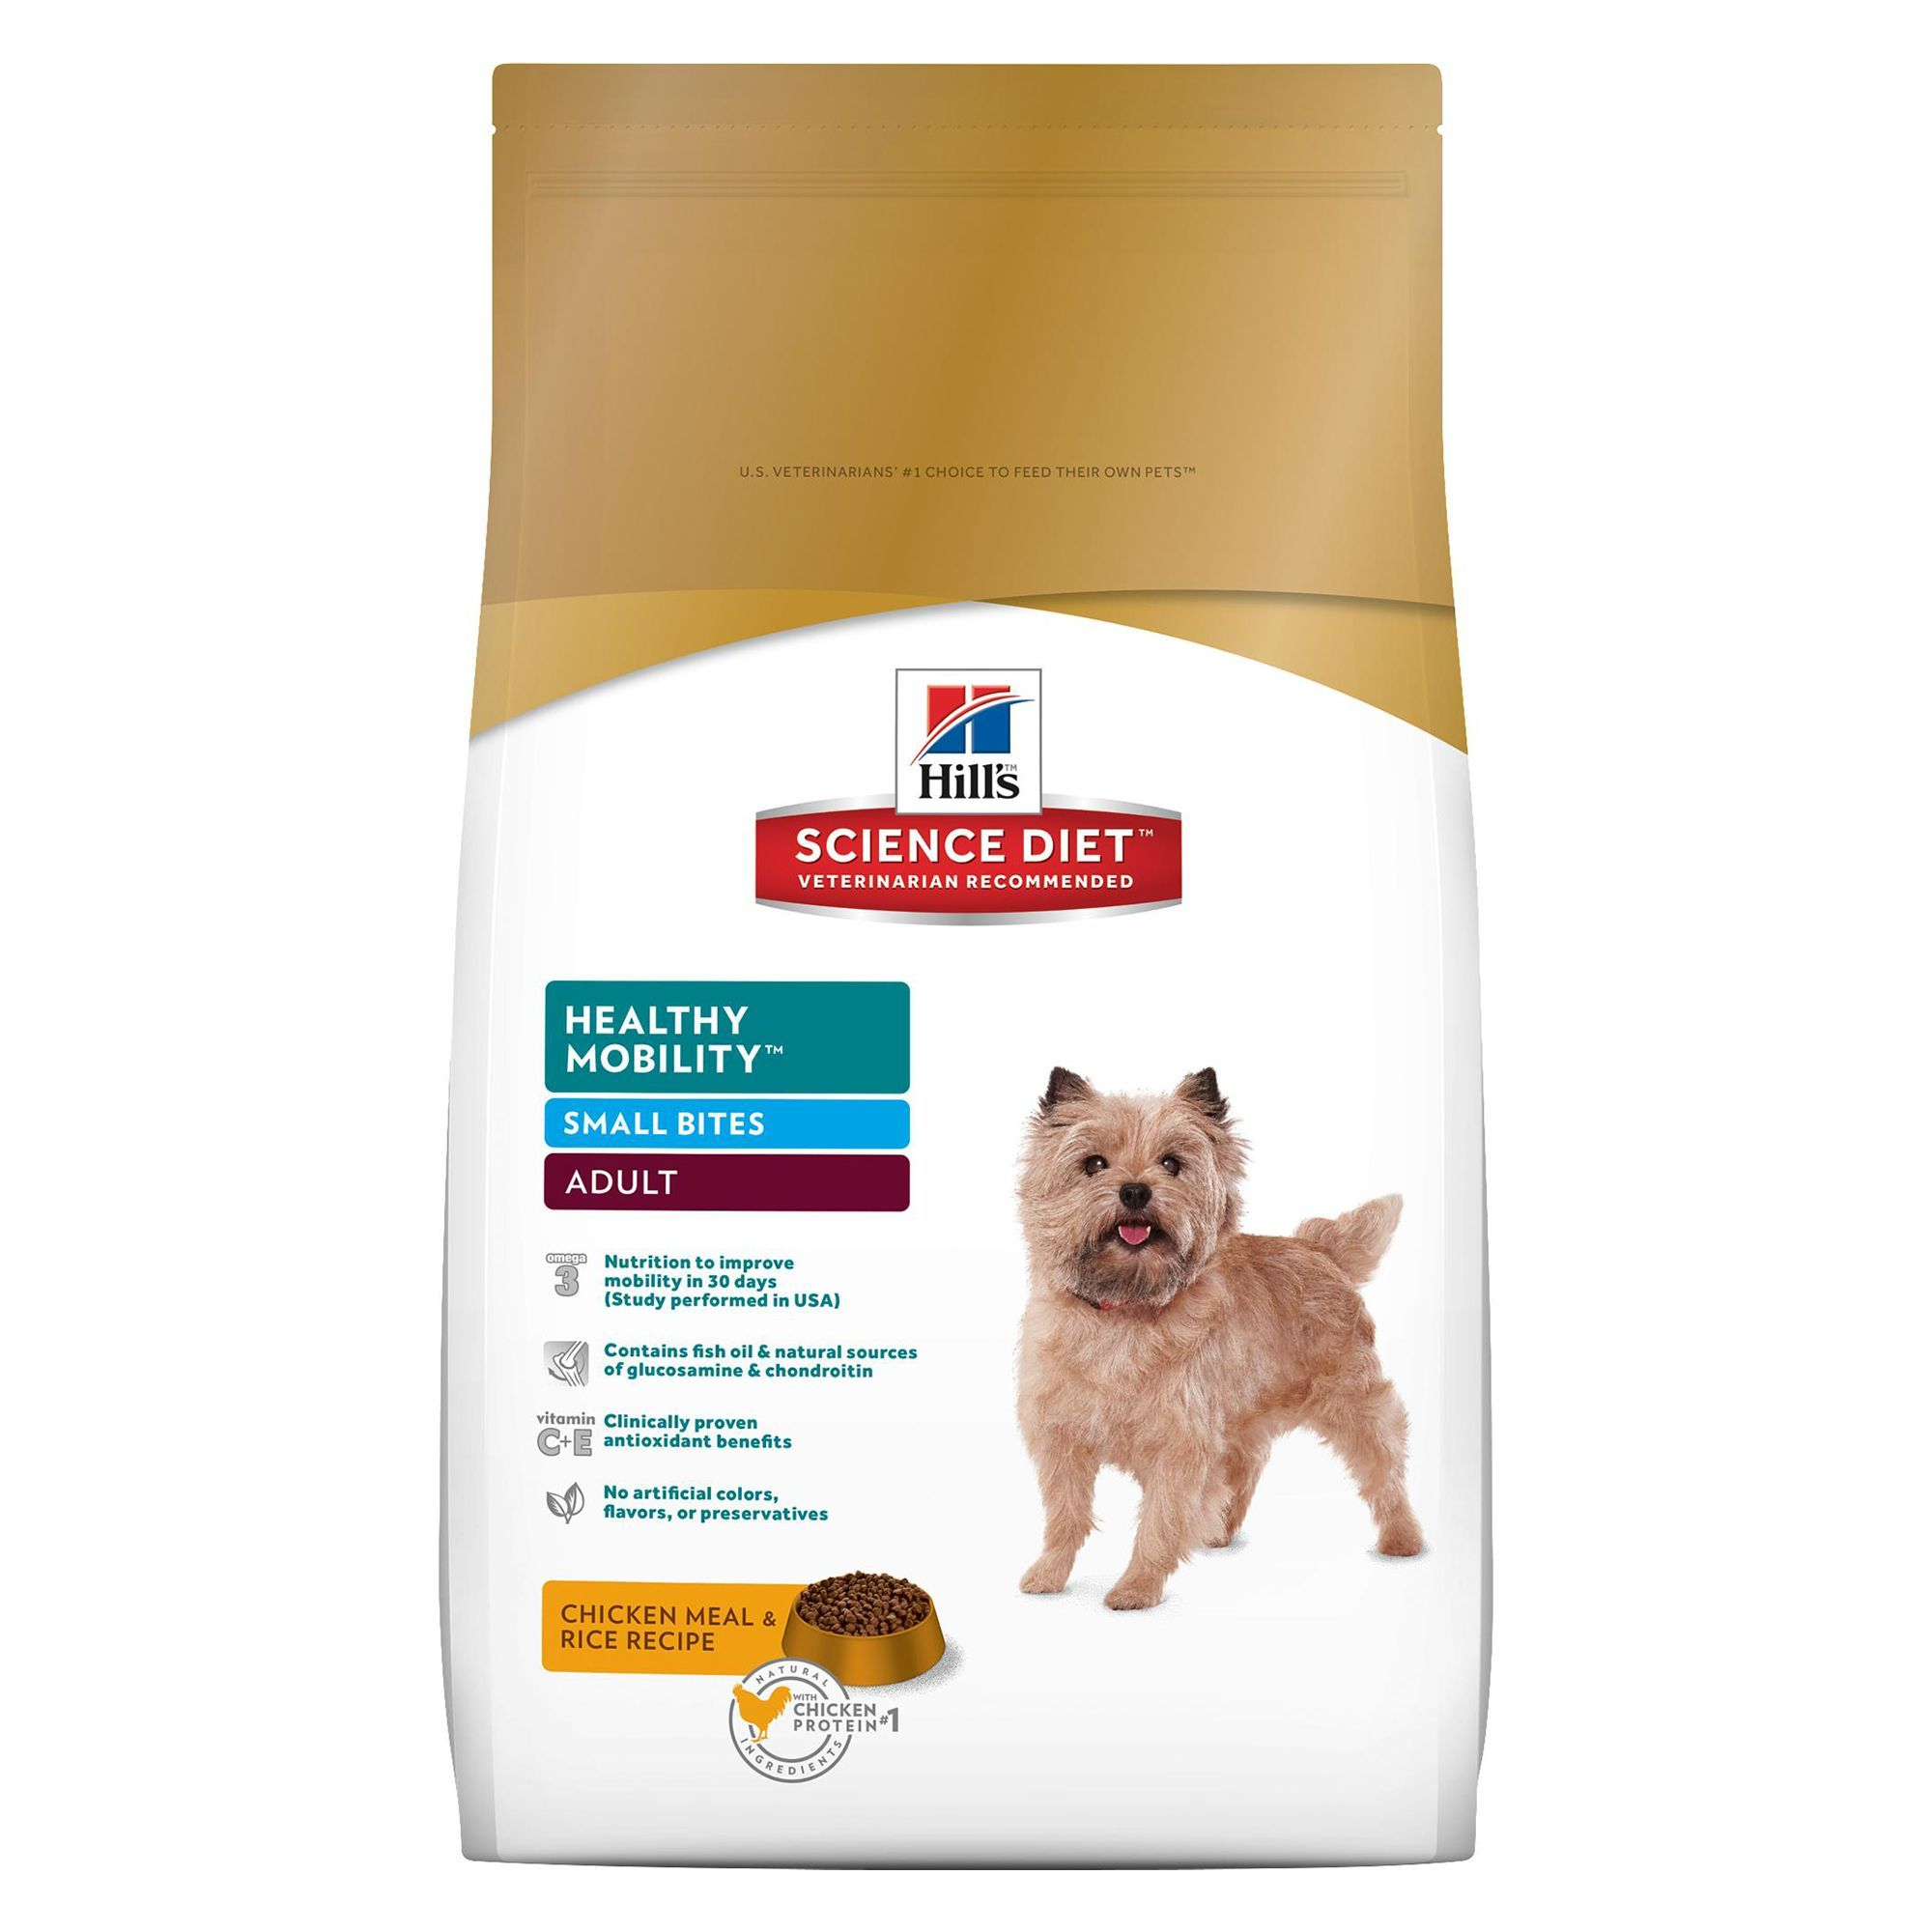 Hill's Science Diet Healthy Mobility Adult Dog Food